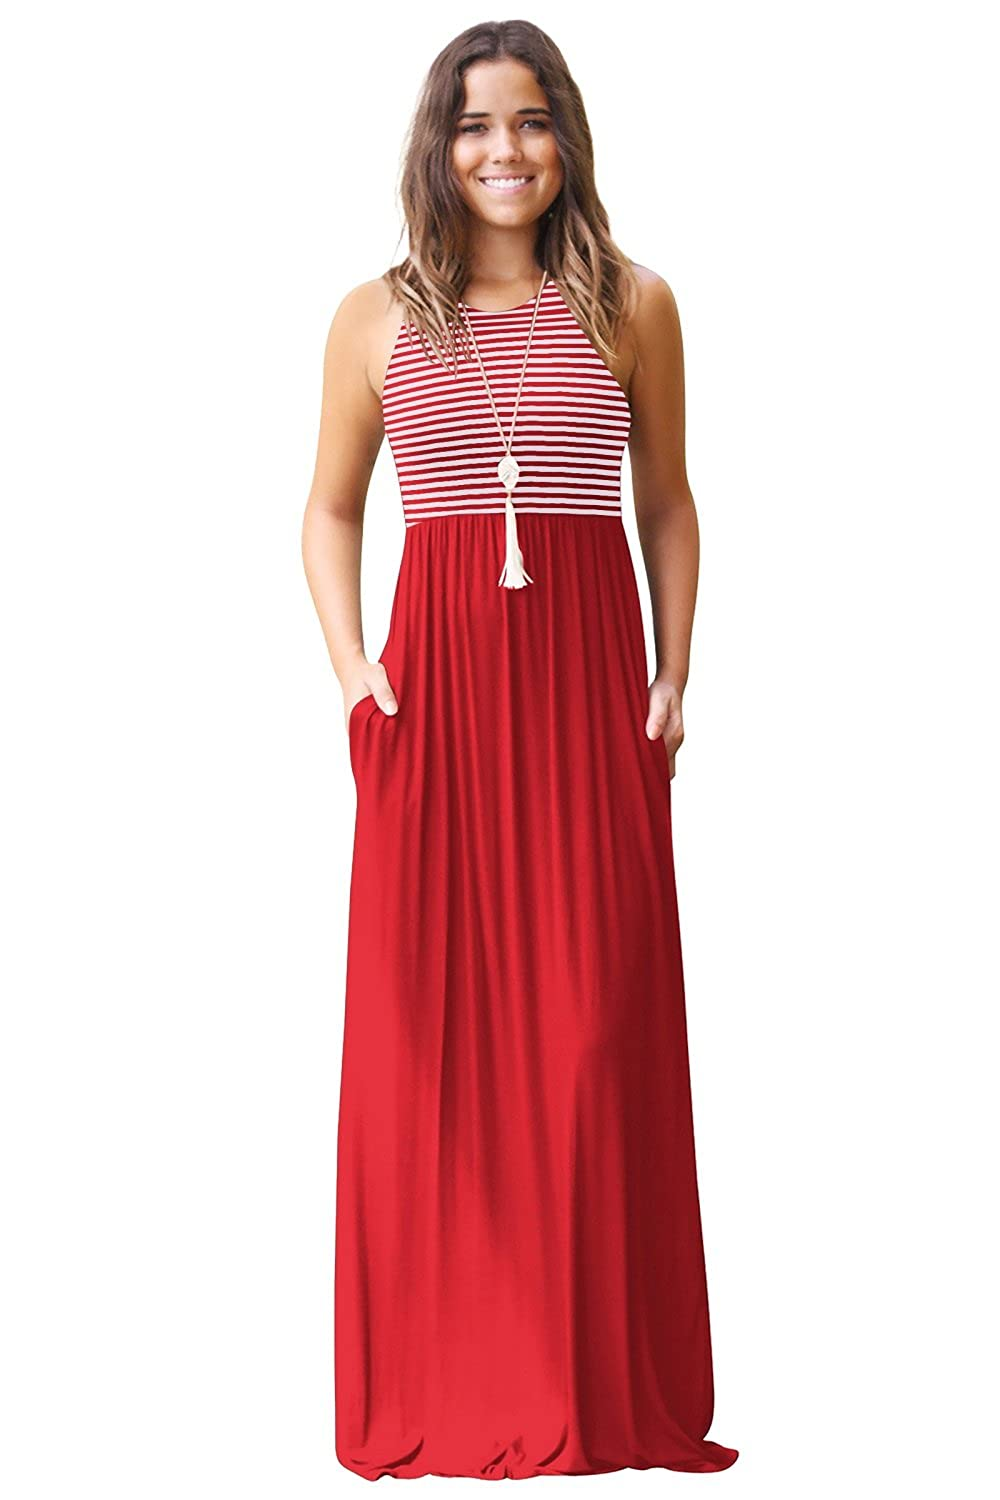 JYUAN Womens Summer Sleeveless Crew Neck Casual Striped Maxi Dress Tank Long Maxi Dress with Pockets JY-FD3115